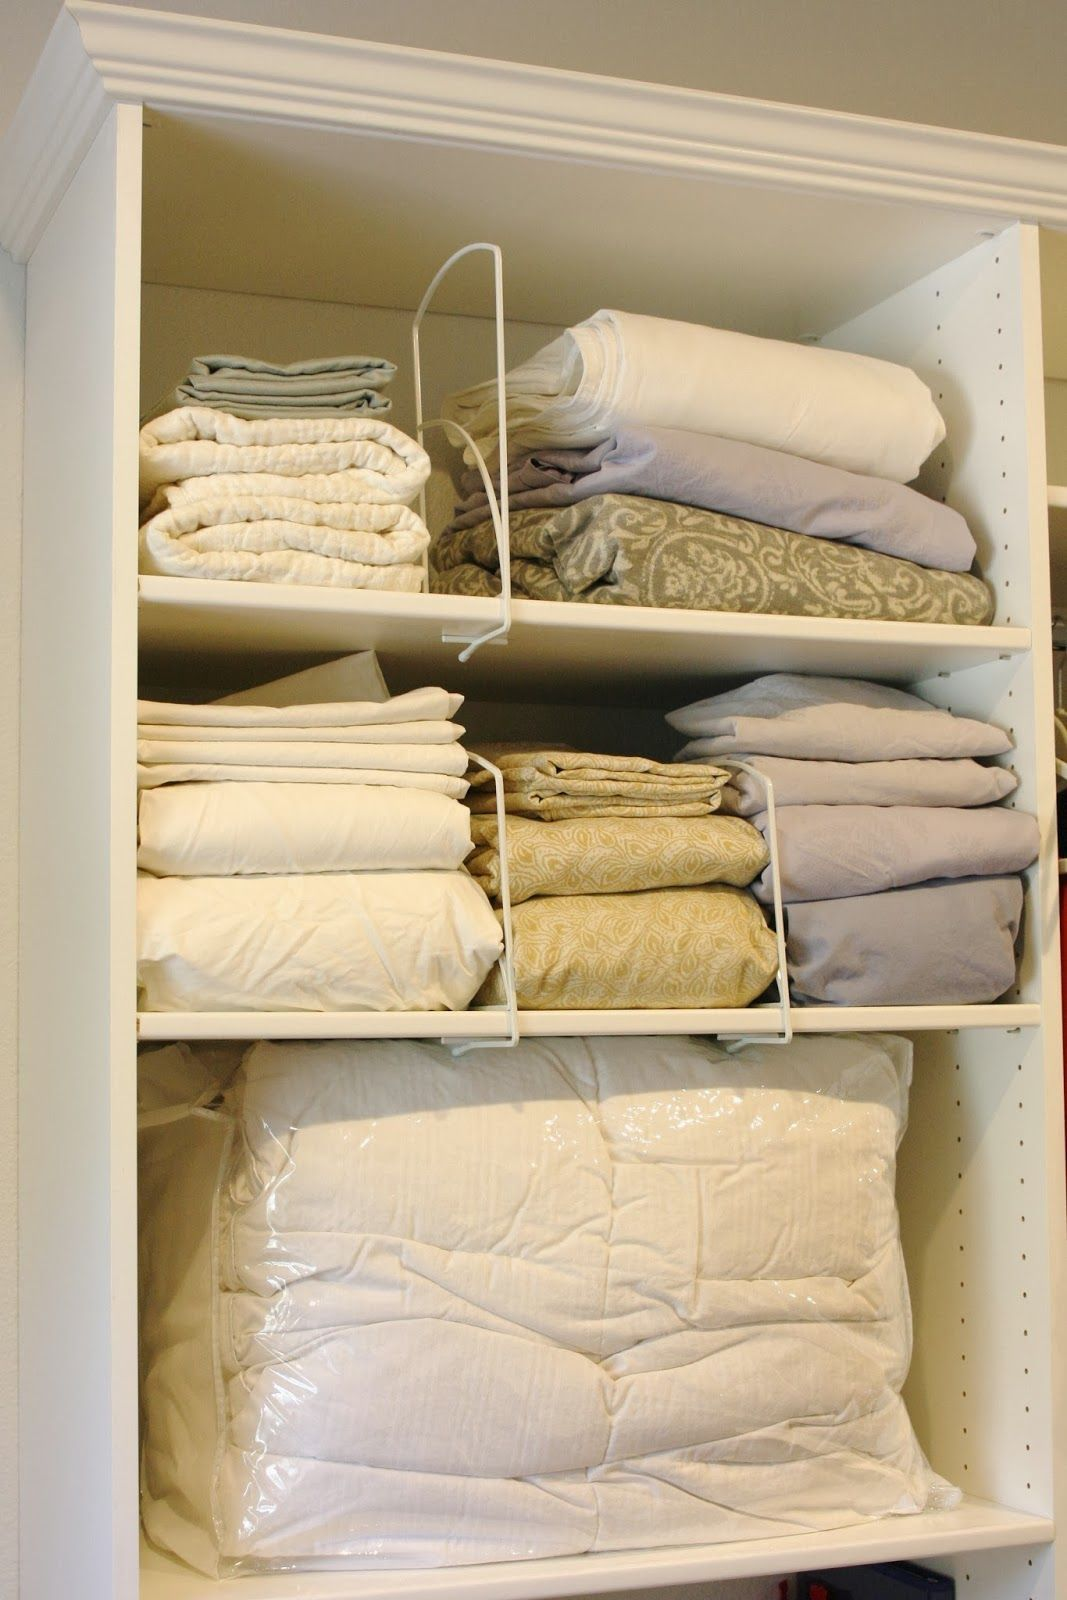 67 Reference Of Sheet Storage Ideas Bed Sheets In 2020 Sheet Storage Organized Bed Bed Sheets